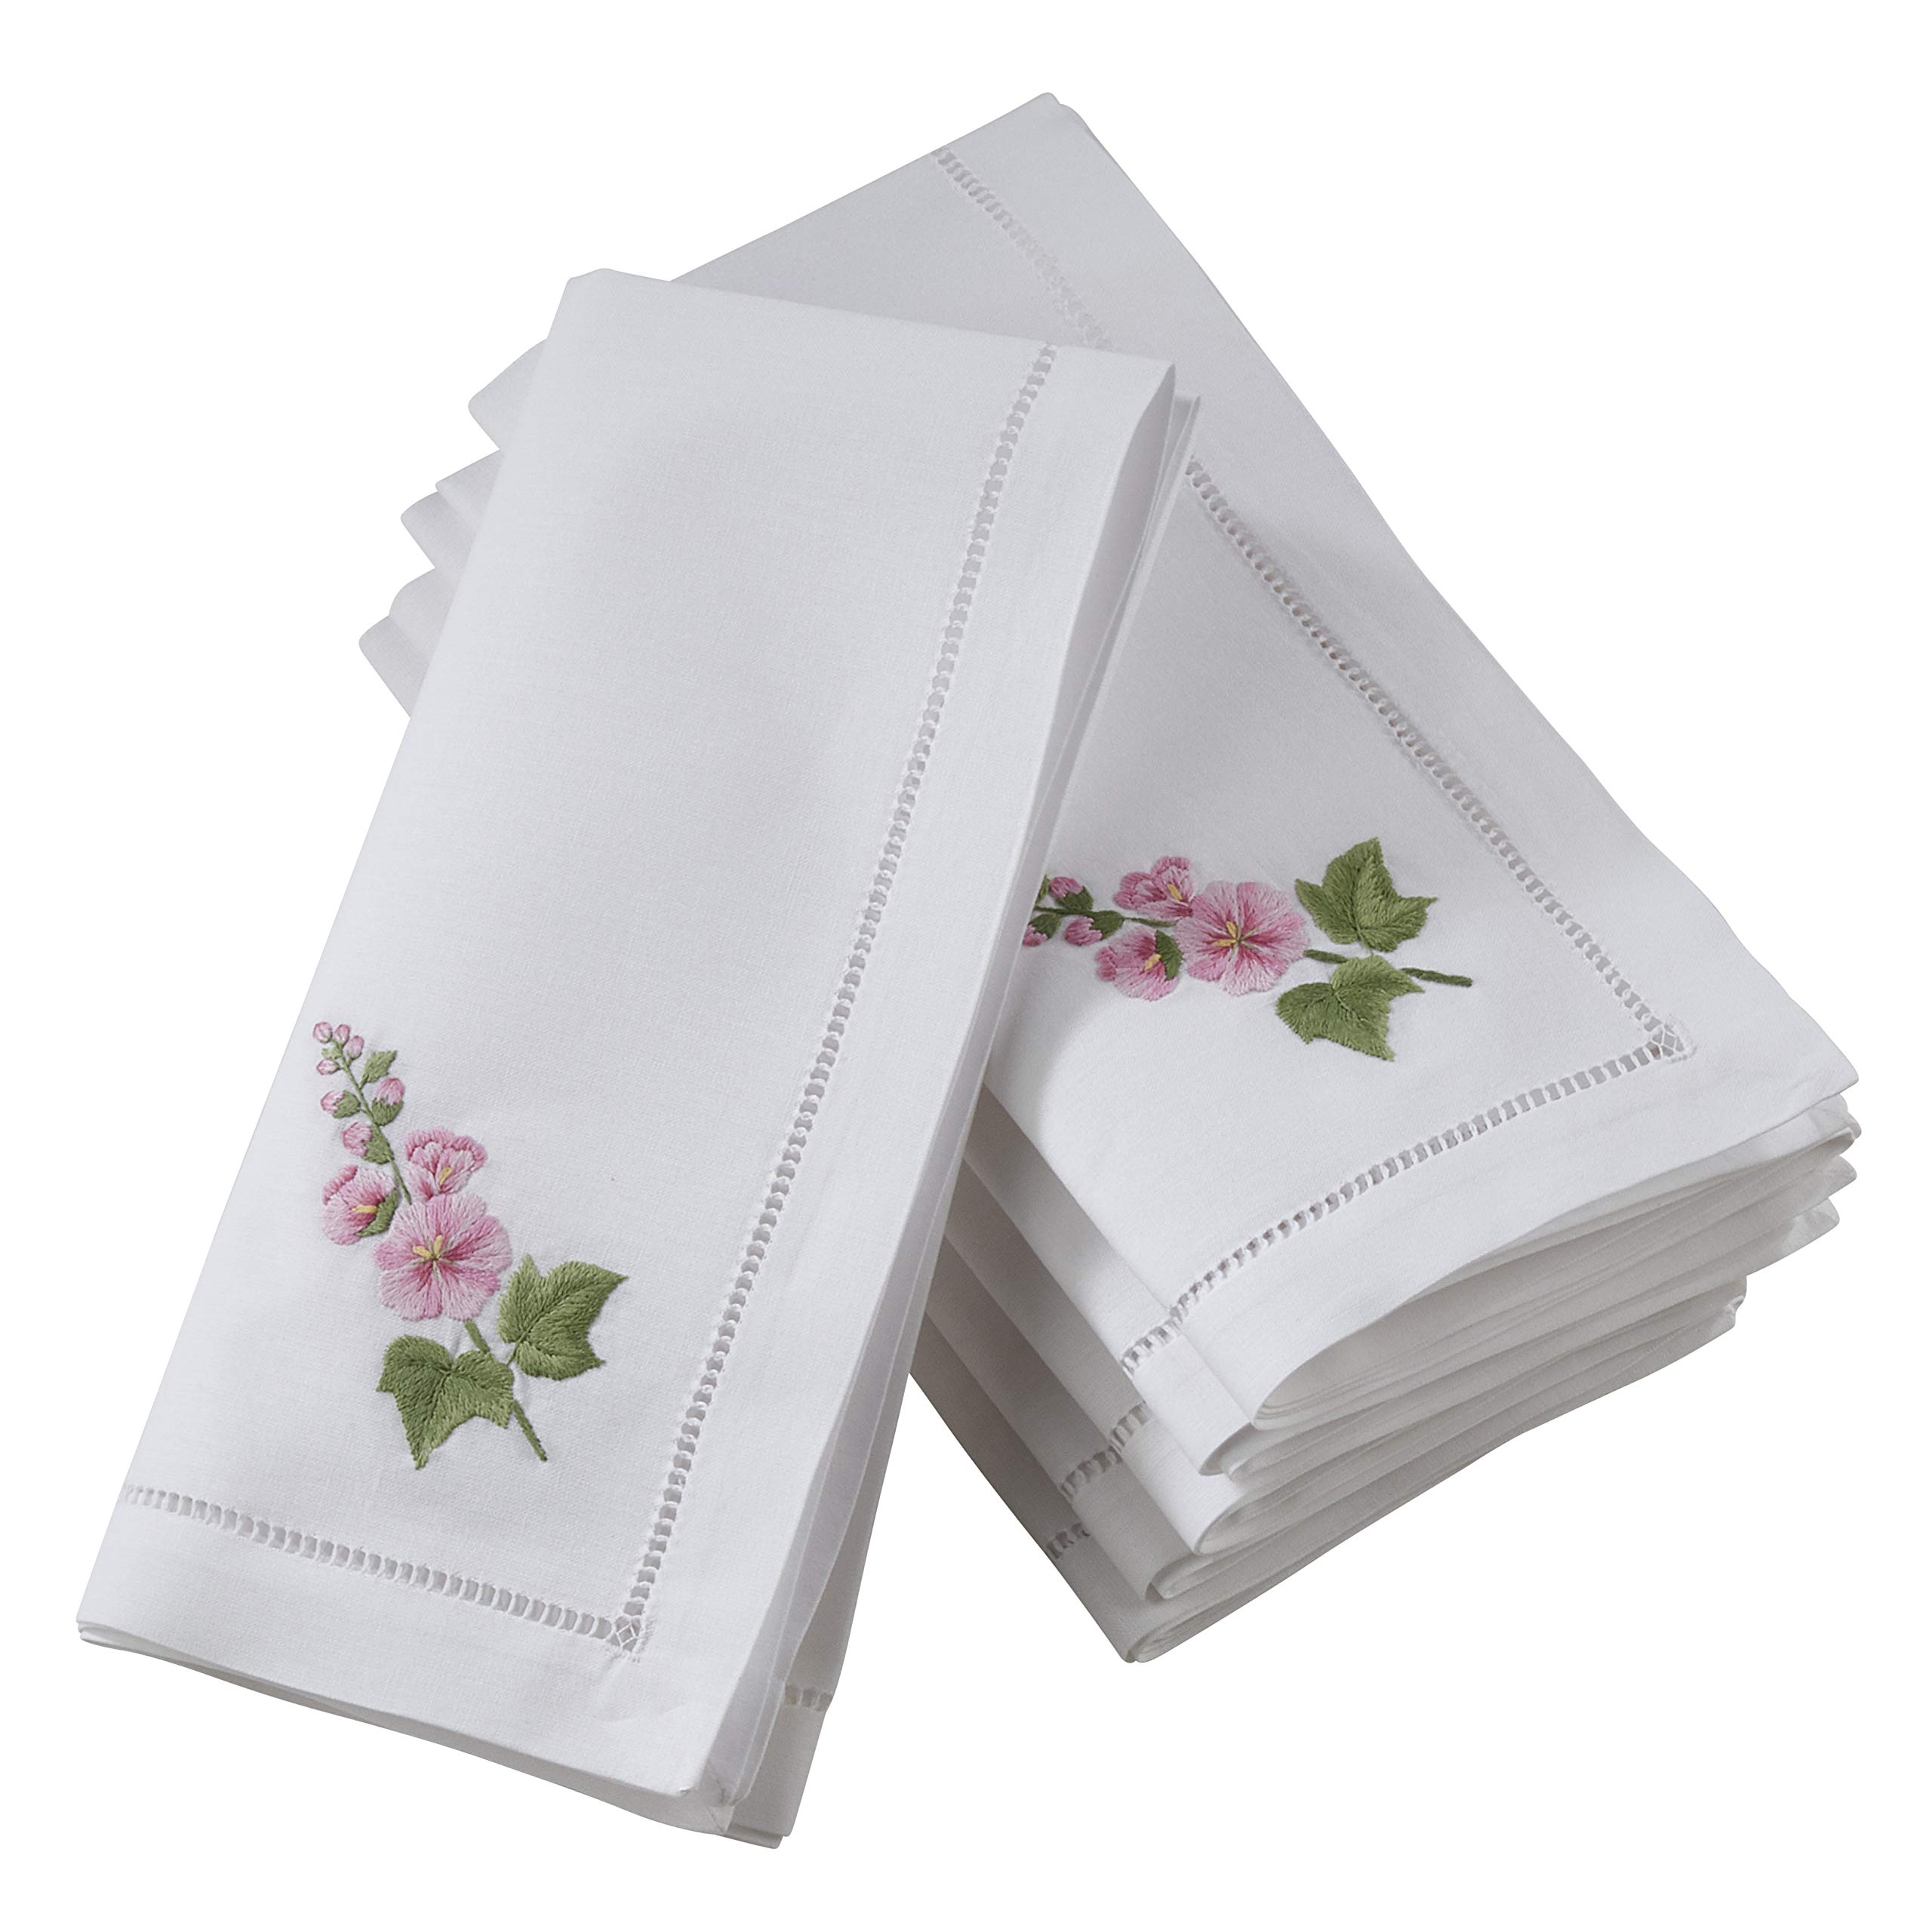 SARO LIFESTYLE NM138.W20S The Broderie Collection Embroidered Hollyhock Hemstitch Napkins (Set of 6) 20'',